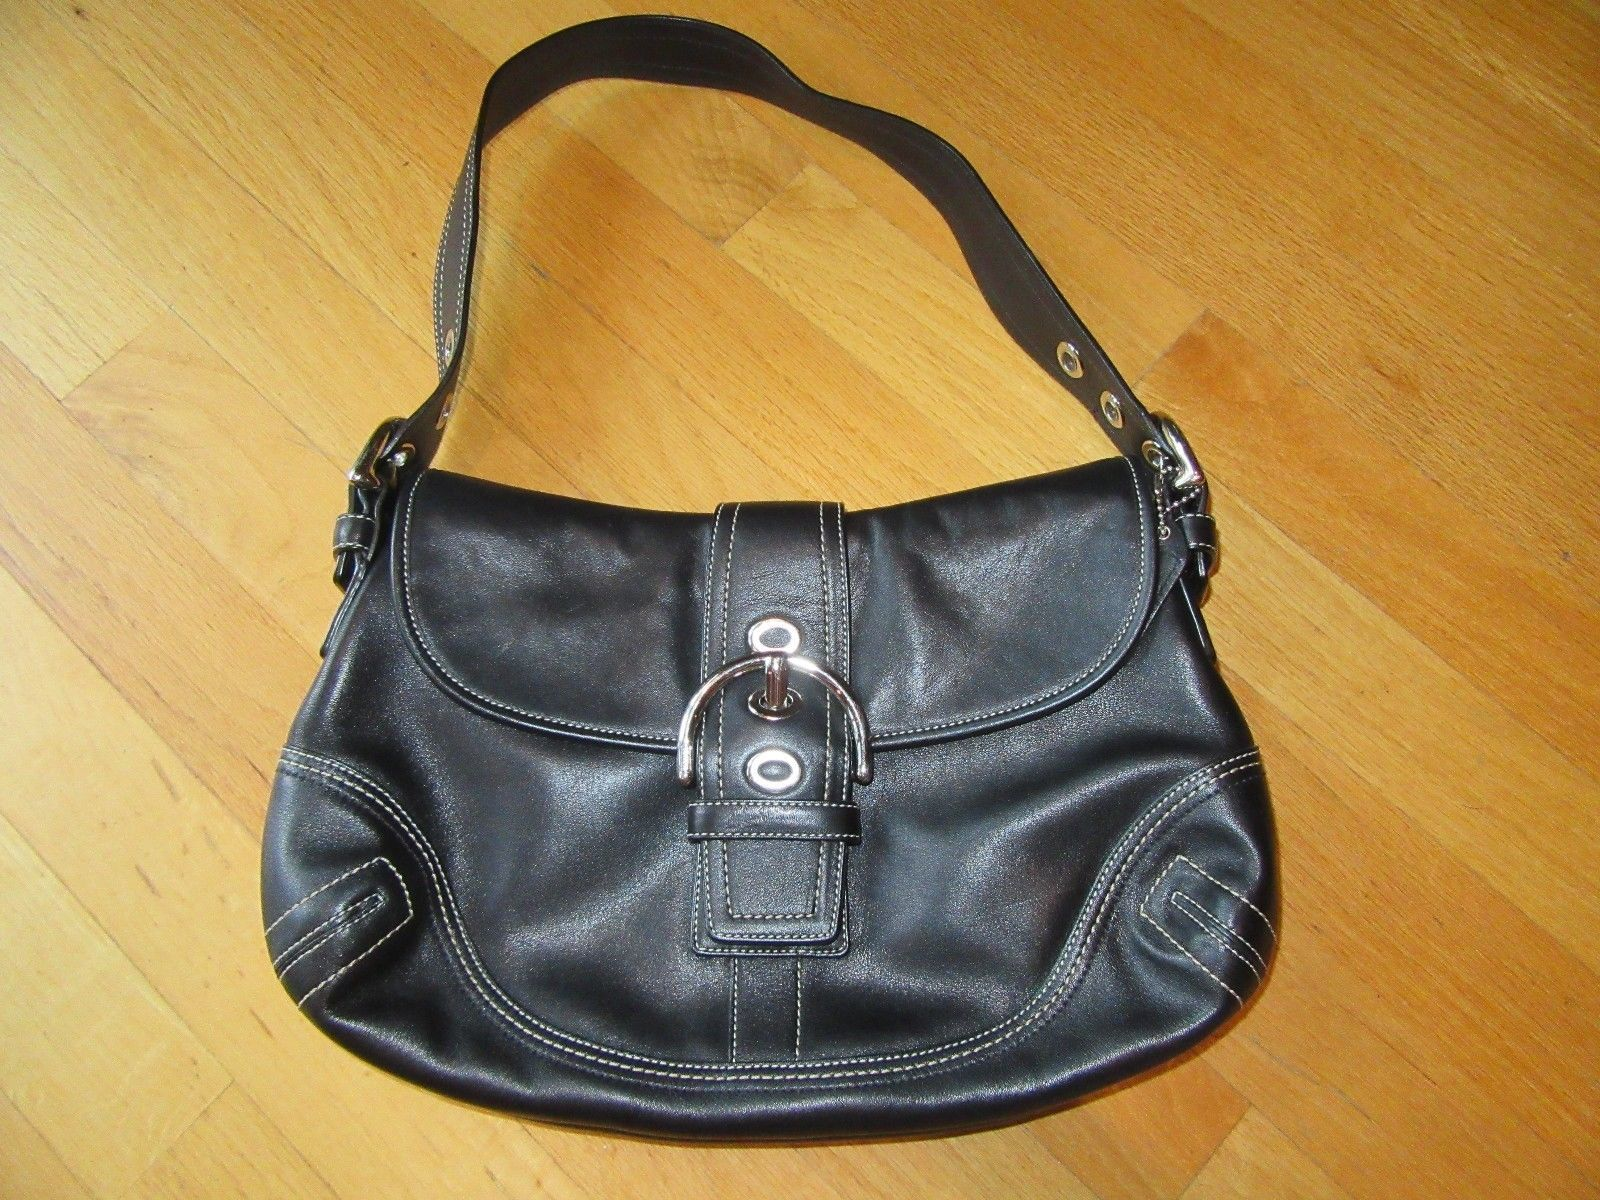 ac6d315acde4 6S COACH AUTHENTIC BLACK LEATHER BUCKLE SOHO SHOULDER HANDBAG PURSE  10192 NICE